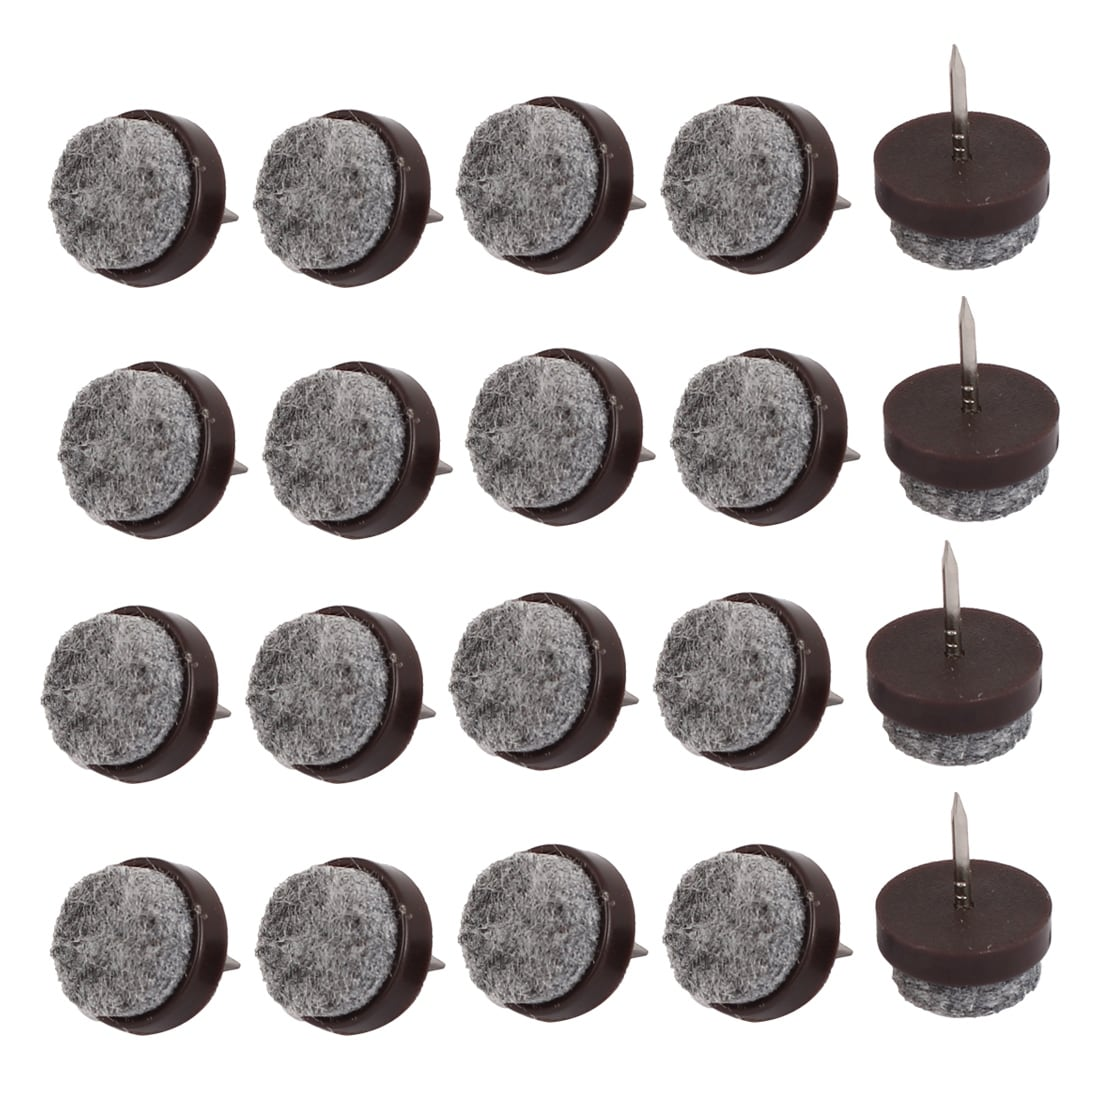 Table Legs Floor Protector Felt Furniture Feet Nails Coffee Color 17mm Dia 20pcs Free Shipping On Orders Over 45 18450519